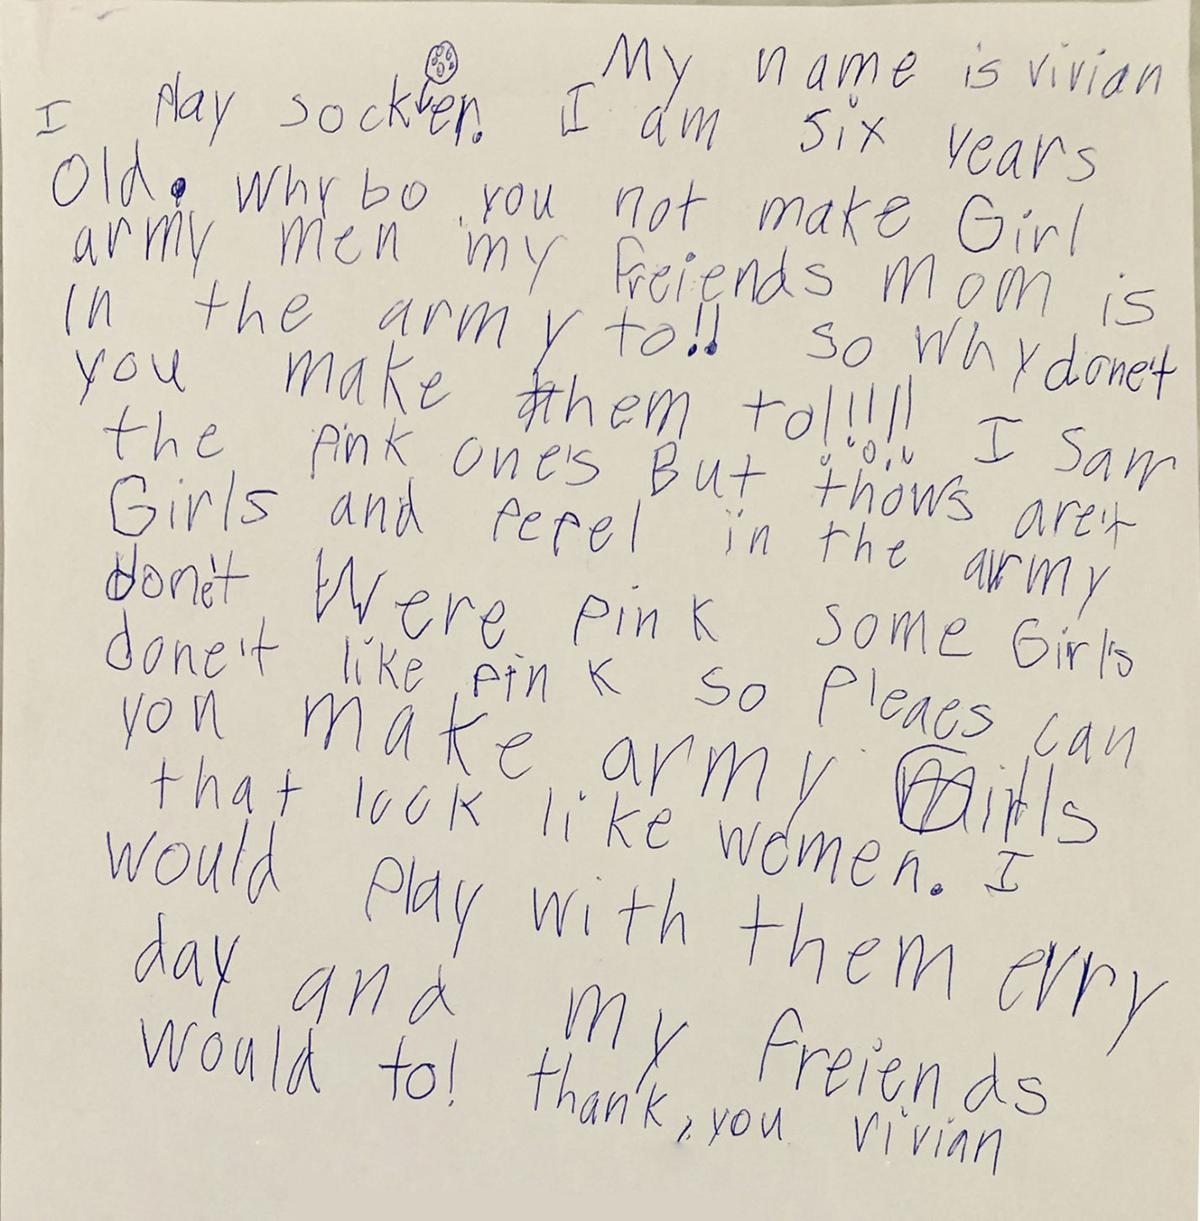 Toy company to sell 'Plastic Army Women' after 6-year-old girl writes heartfelt letter